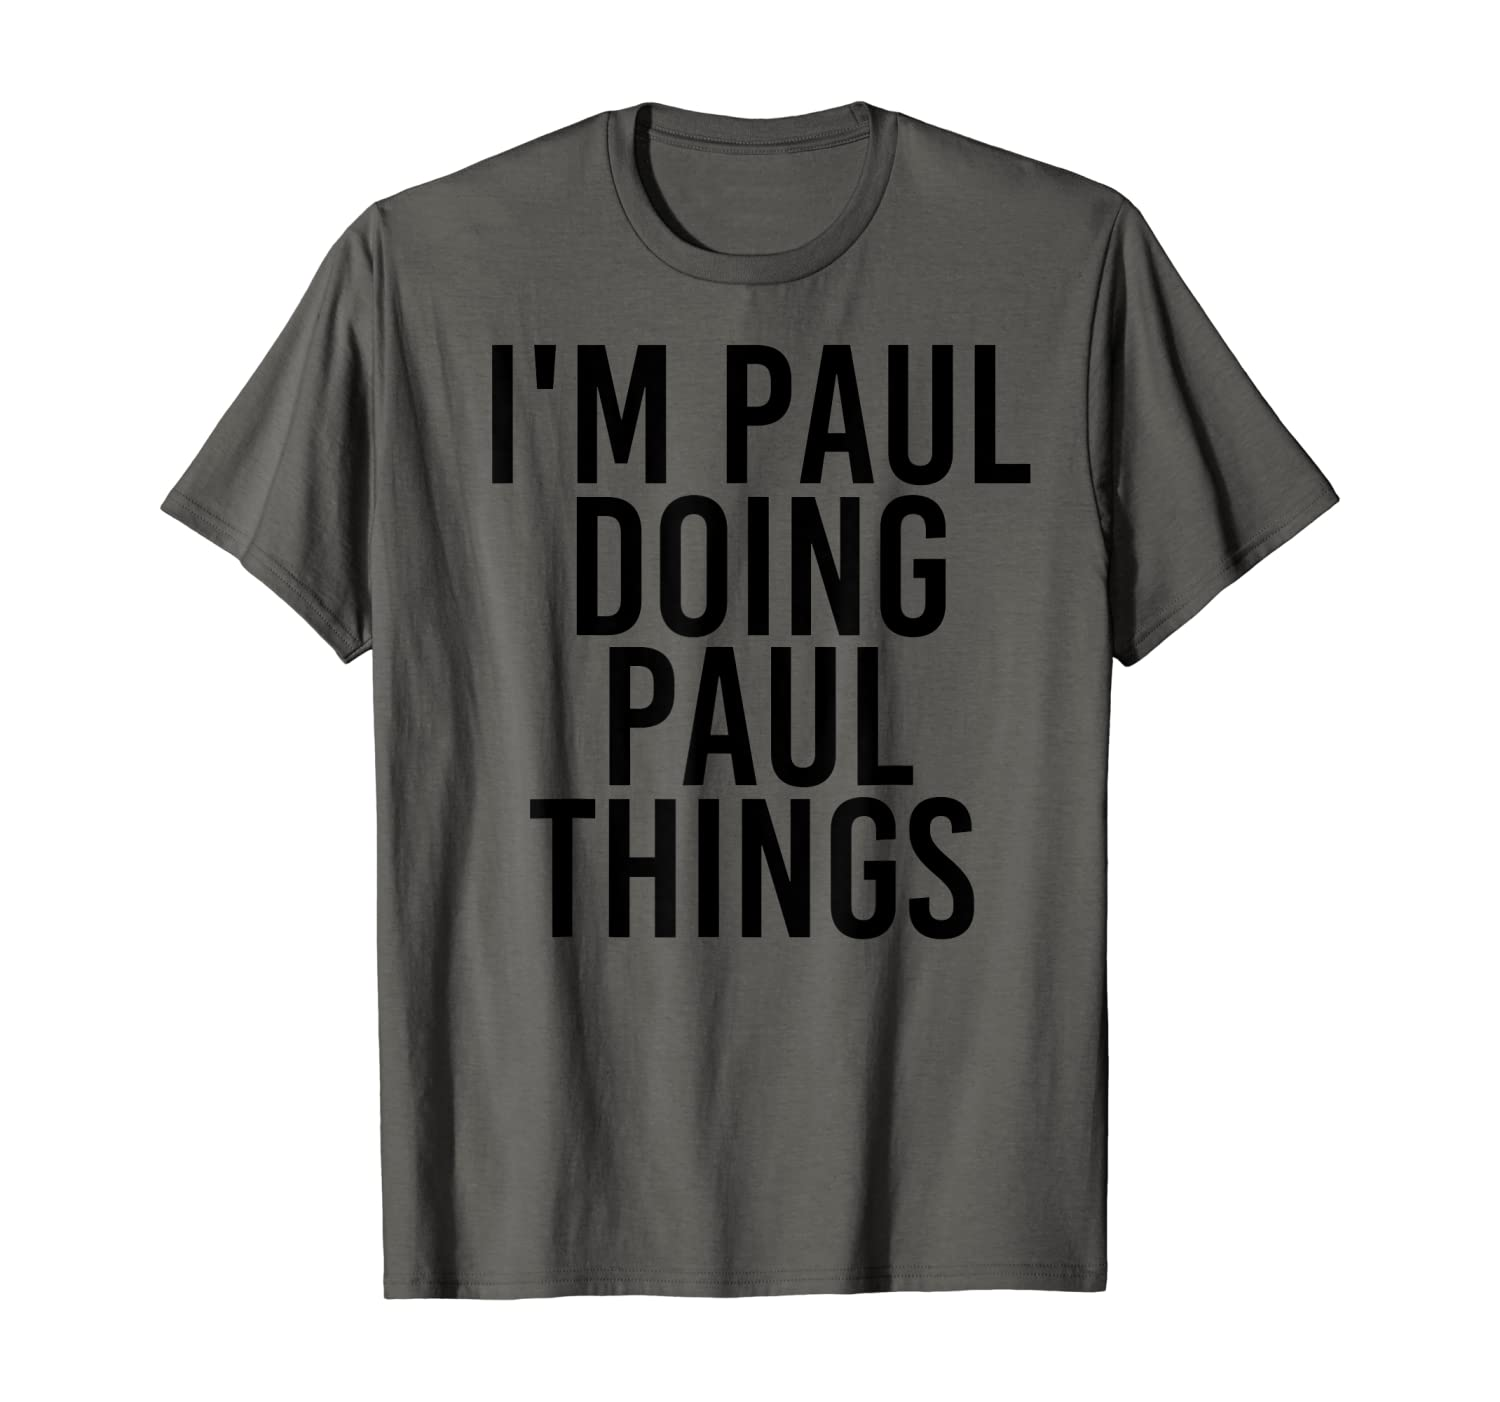 I'M PAUL DOING PAUL THINGS Name Funny Birthday Gift Idea T-Shirt